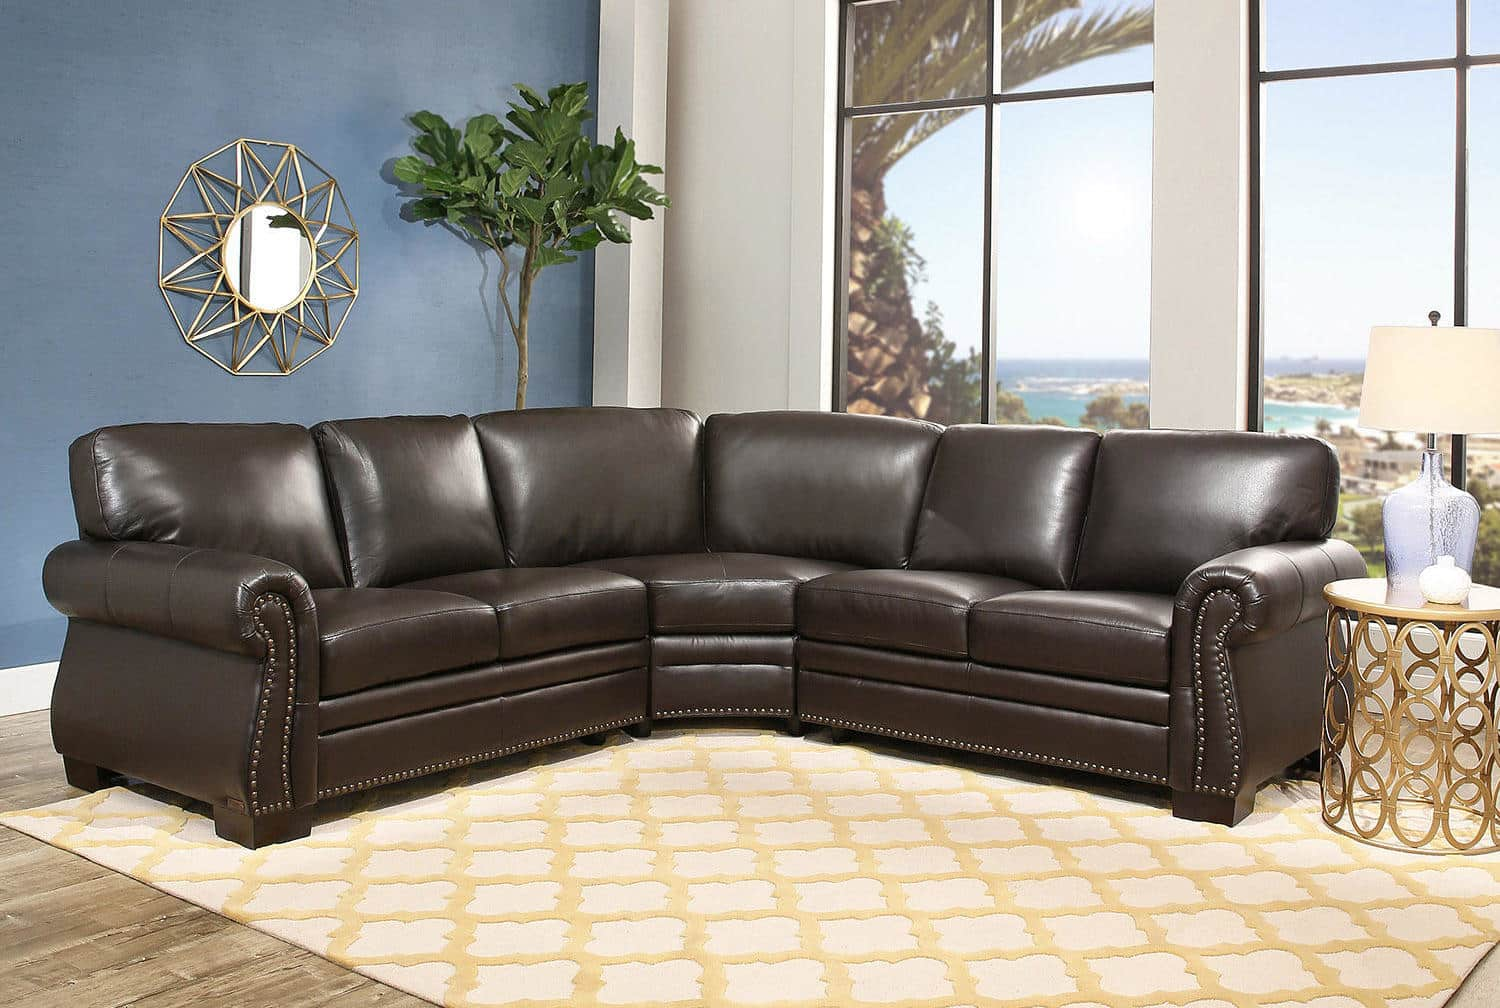 Abbyson Living Blakely Top-Grain Leather Sectional Sofa